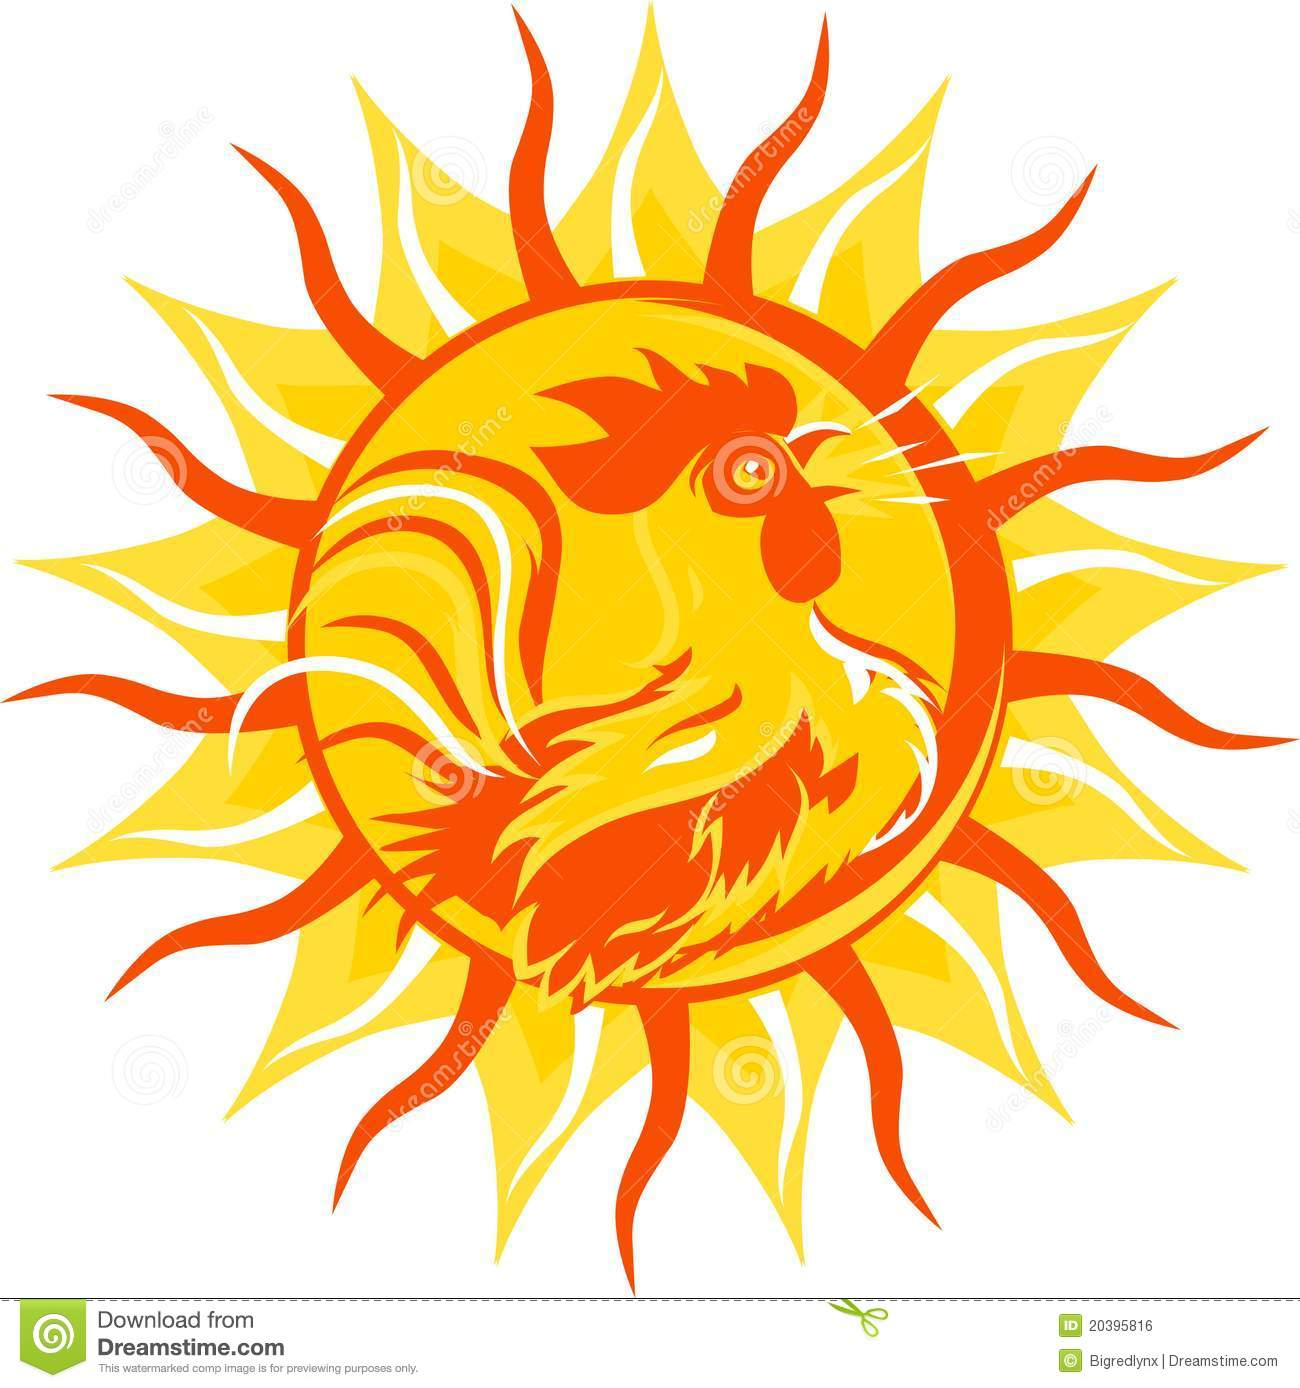 Morning Rooster Clipart - Clipart Kid